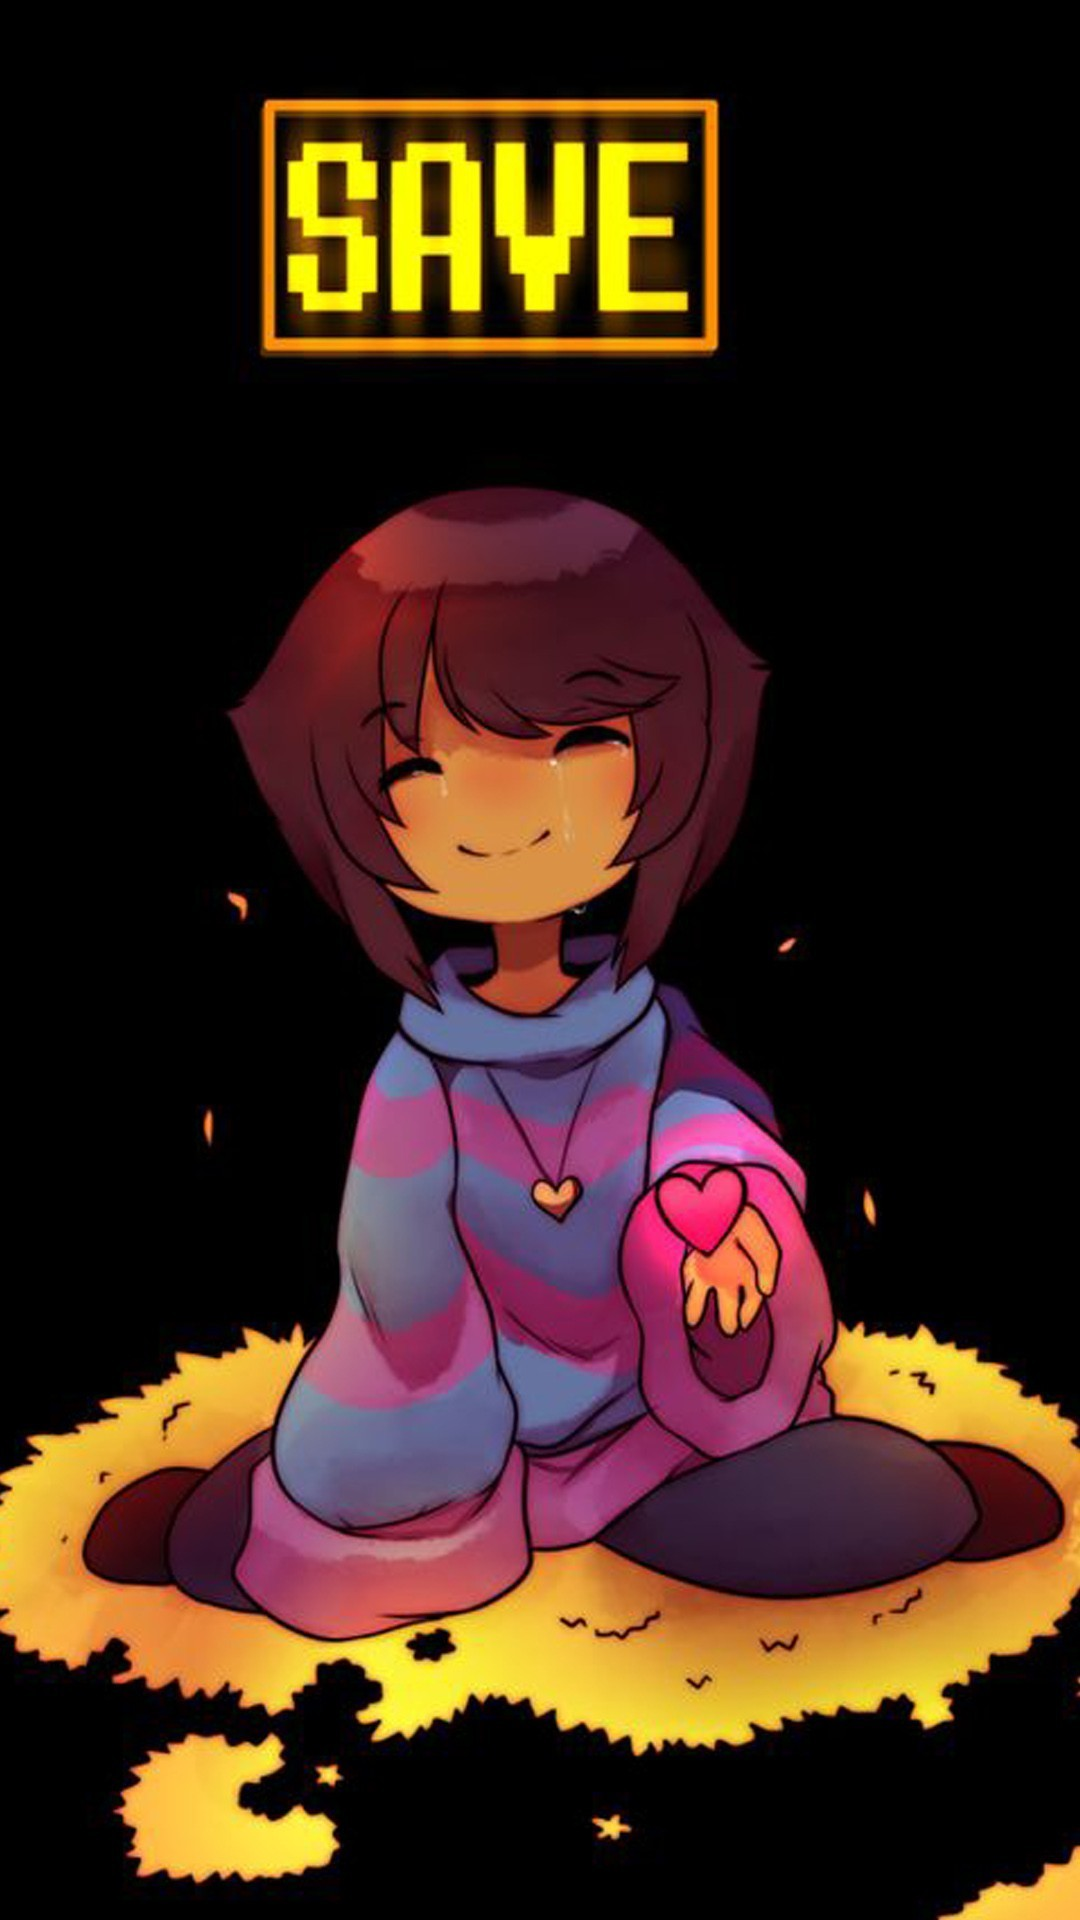 1080x1920 1920x1080 Chara Undertale Wallpapers Wallpaper Cave . Undertale Wallpaper .